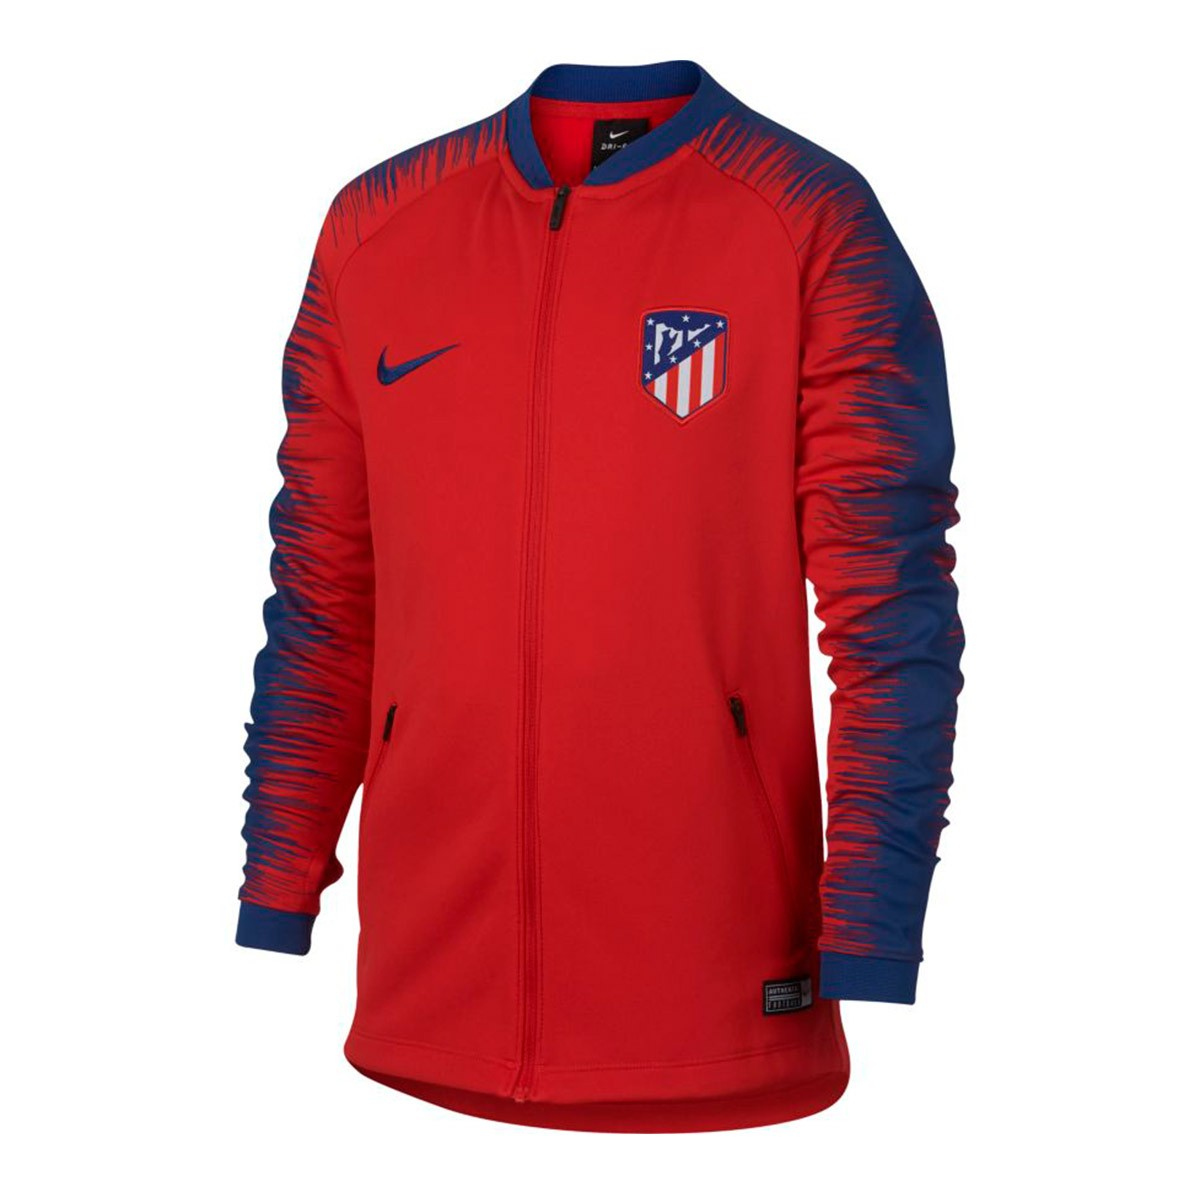 0873fb37fe2c9 Chaqueta Nike Atlético de Madrid Pre-Match 2018-2019 Niño Sport red-Deep  royal blue - Tienda de fútbol Fútbol Emotion